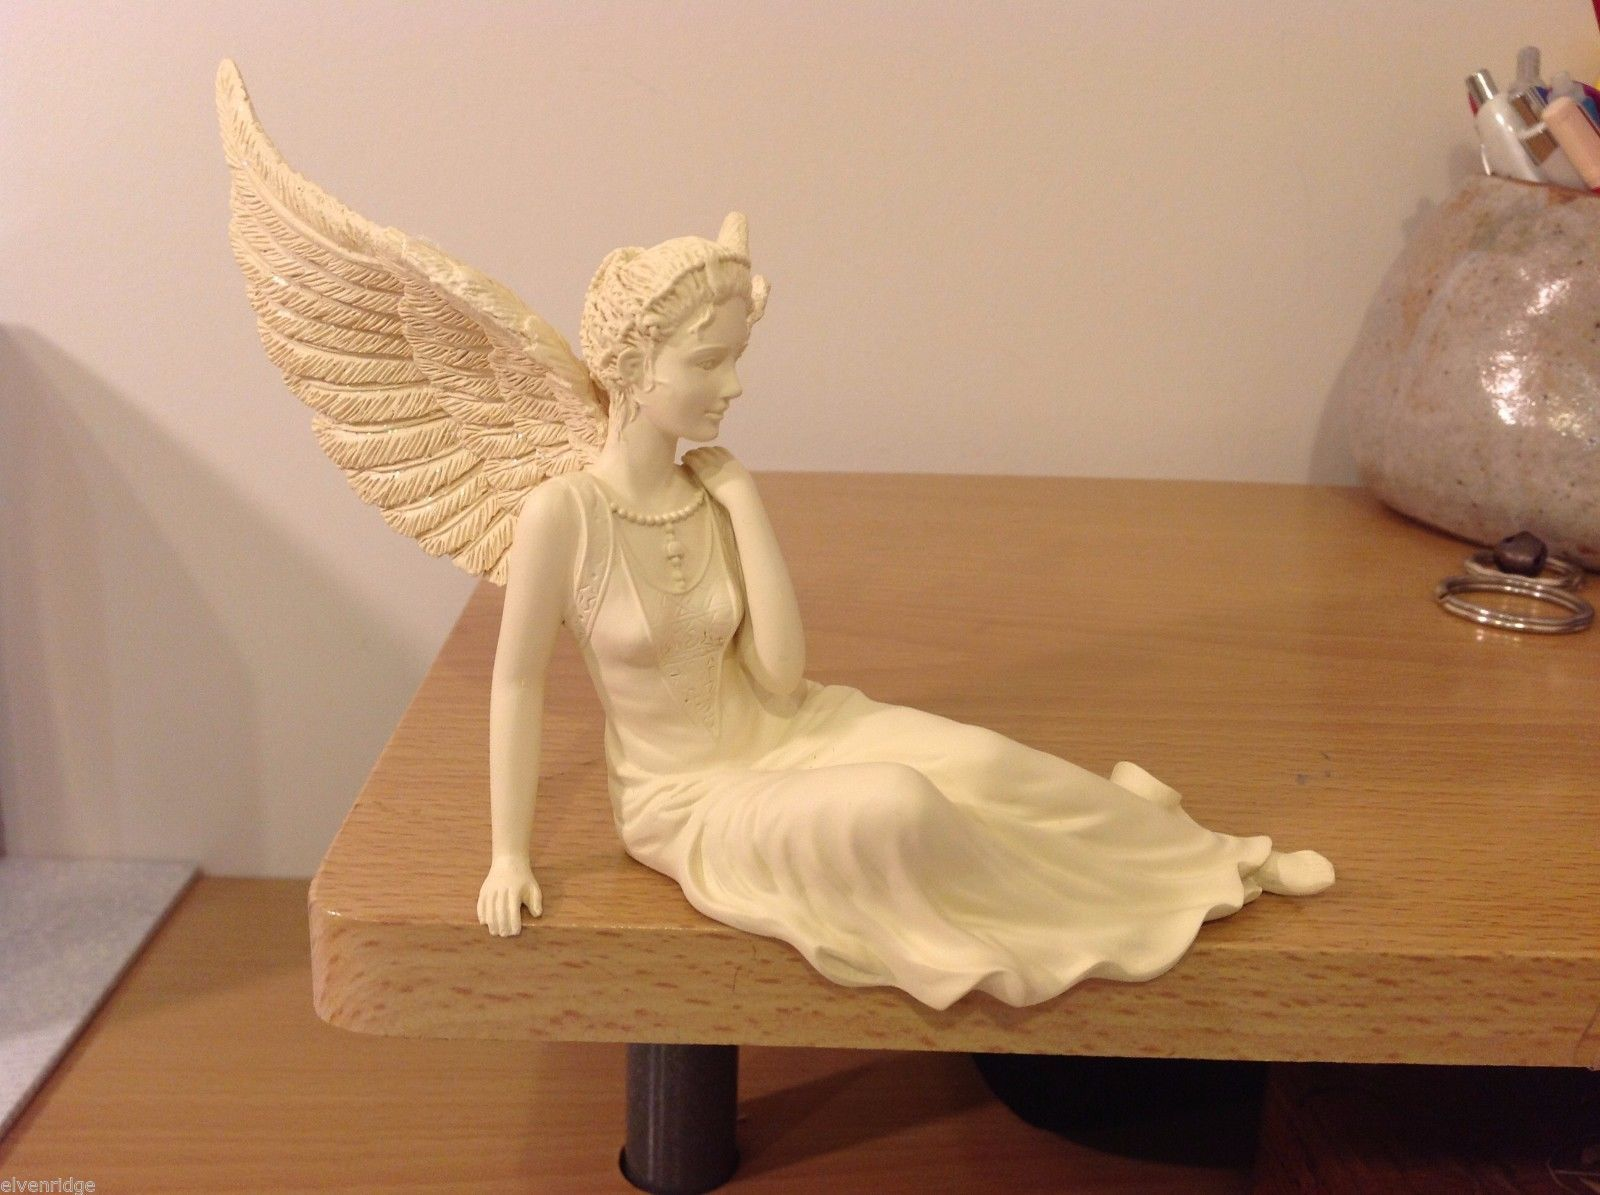 Graceful angel sitter girl with glitter wings flowing gown sitting reclined